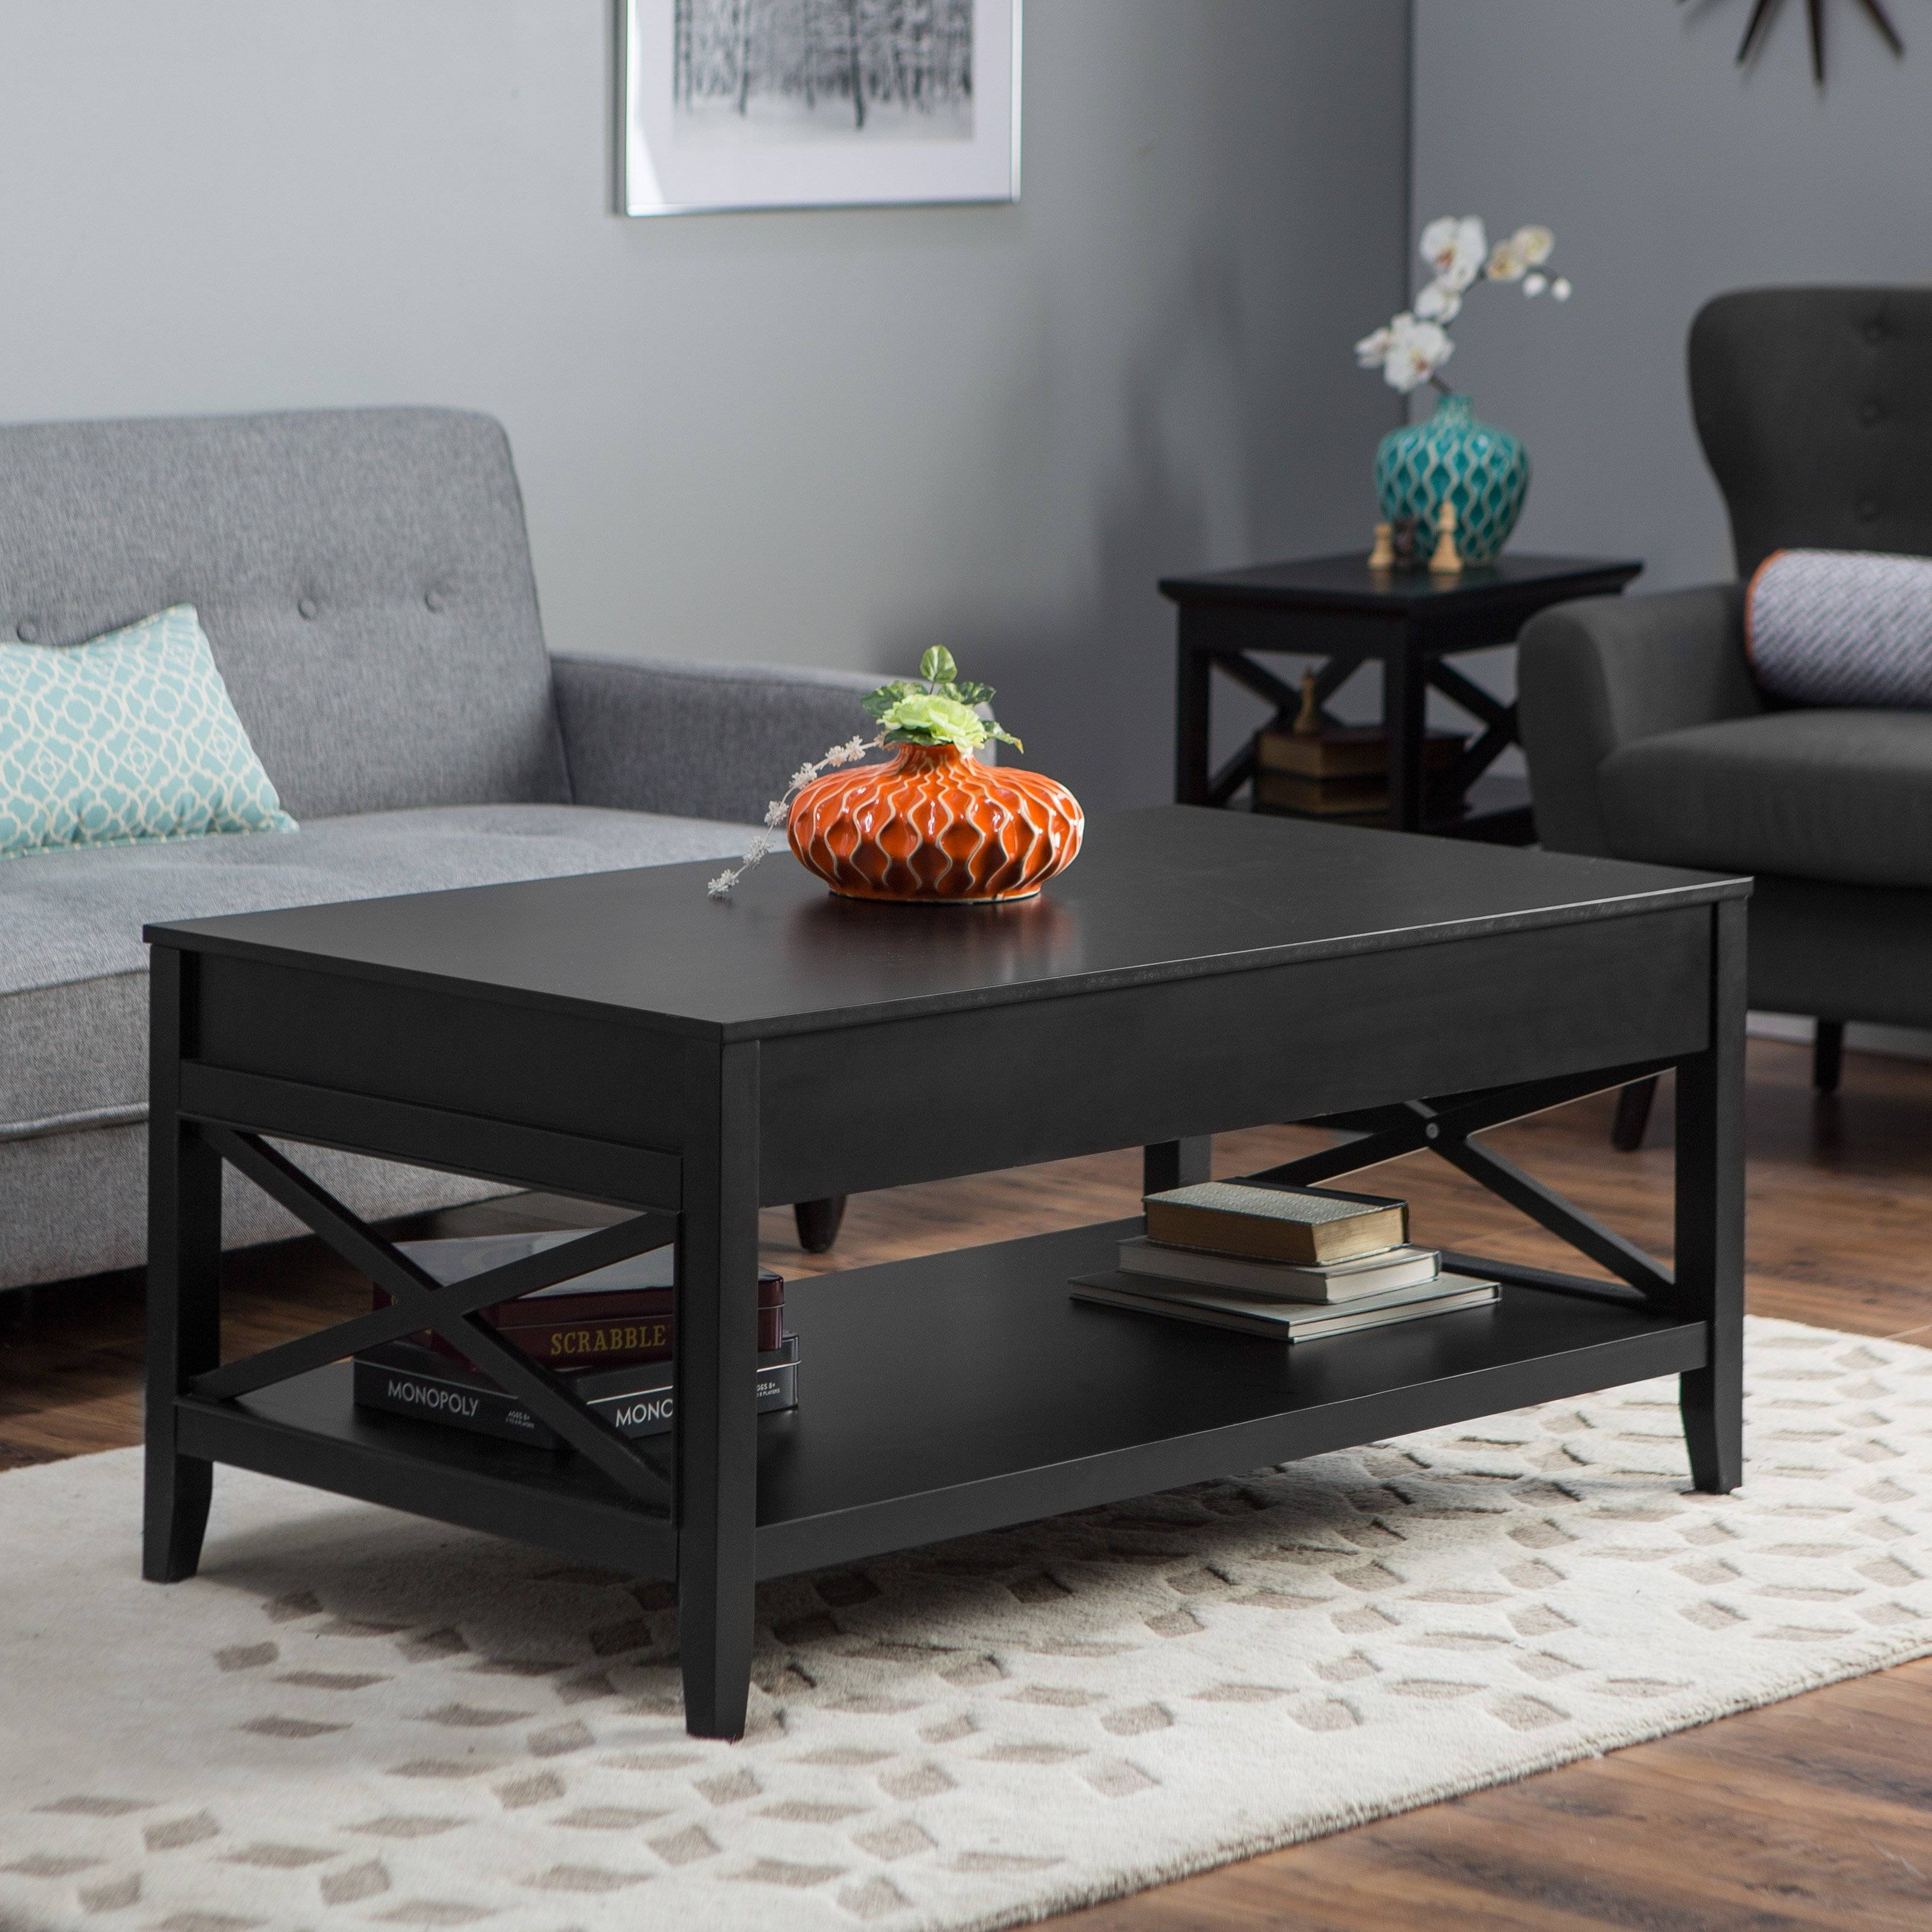 Small Coffee Tables That Lift Up | Decorative Table Decoration inside Flip Up Coffee Tables (Image 28 of 30)